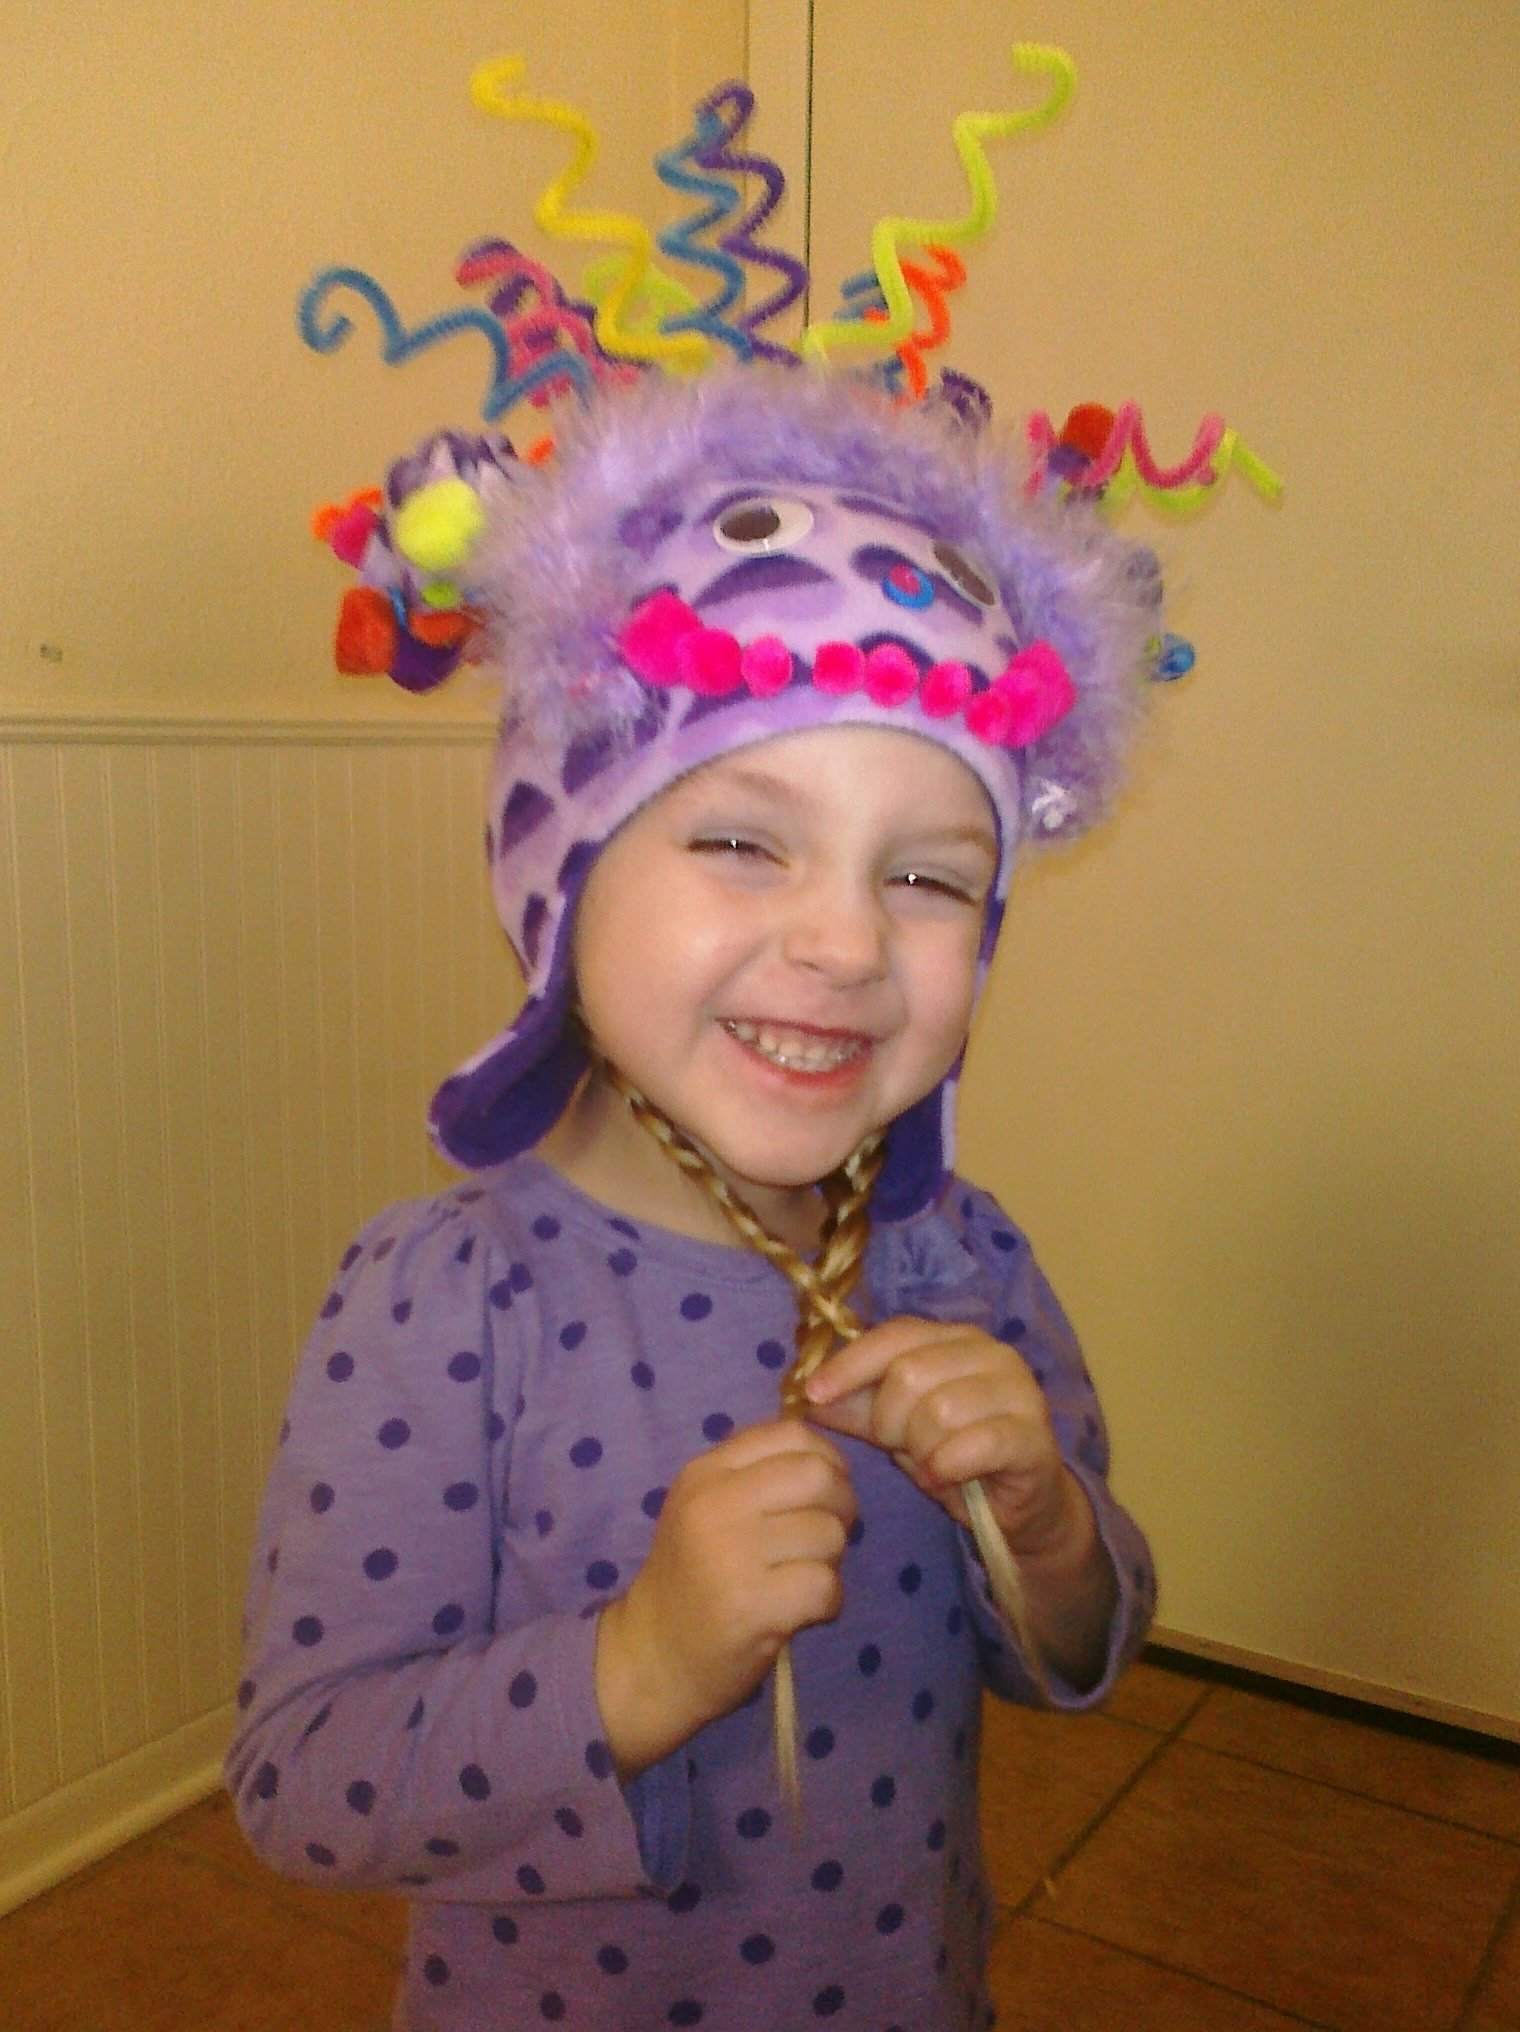 10 Fantastic Crazy Hat Ideas For Kids crazy hat for the girls pinterest silly hats wacky 2020